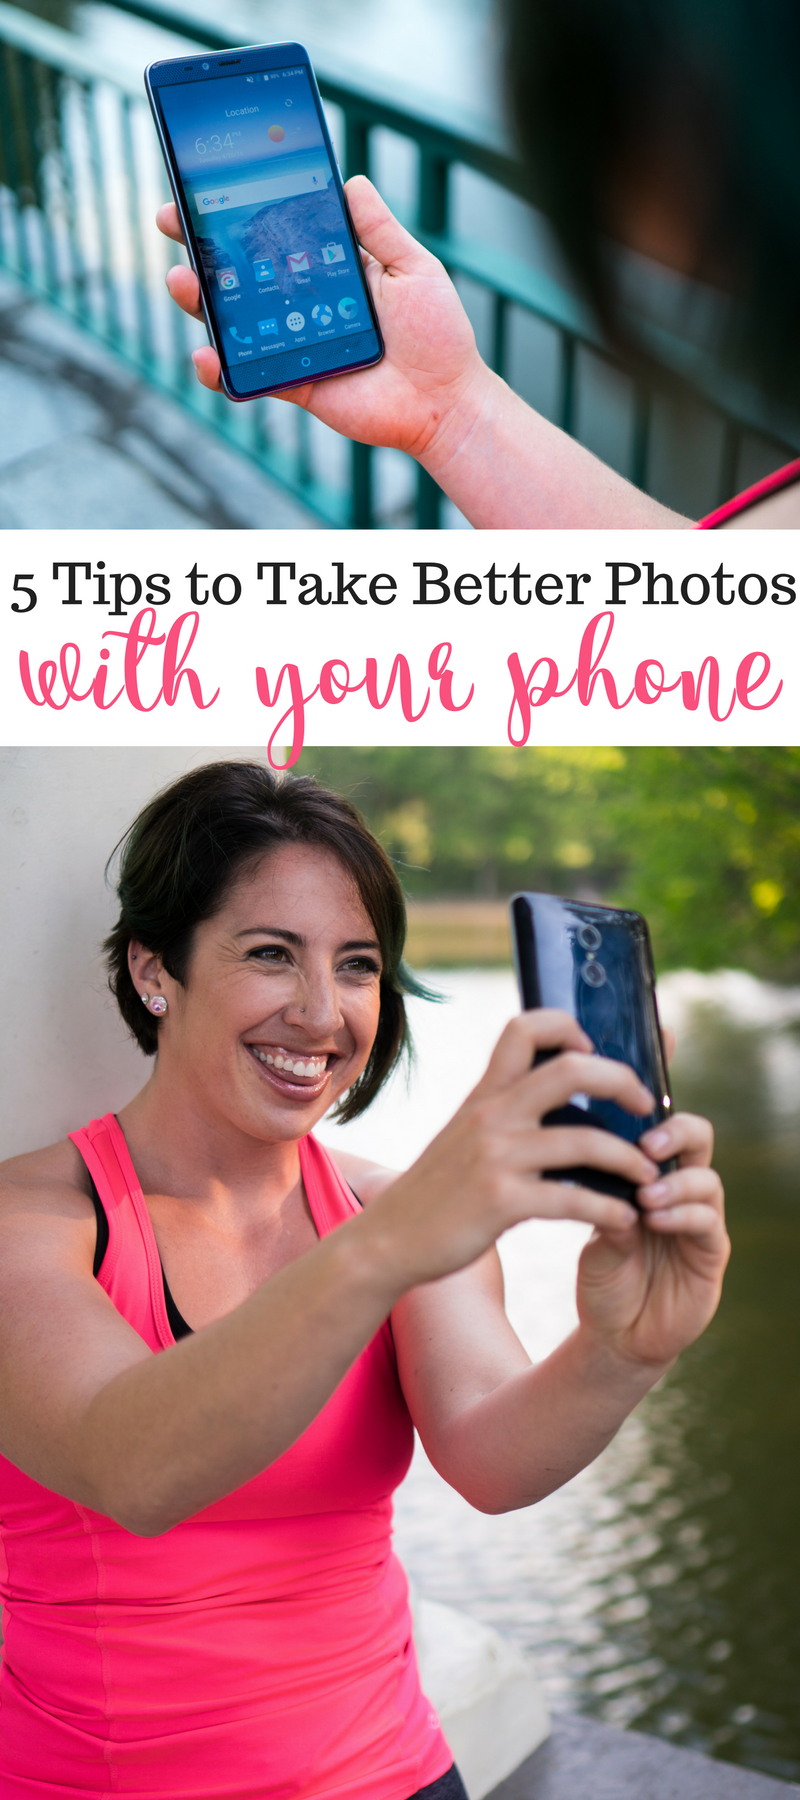 5 tips for taking better photos With Your Phone